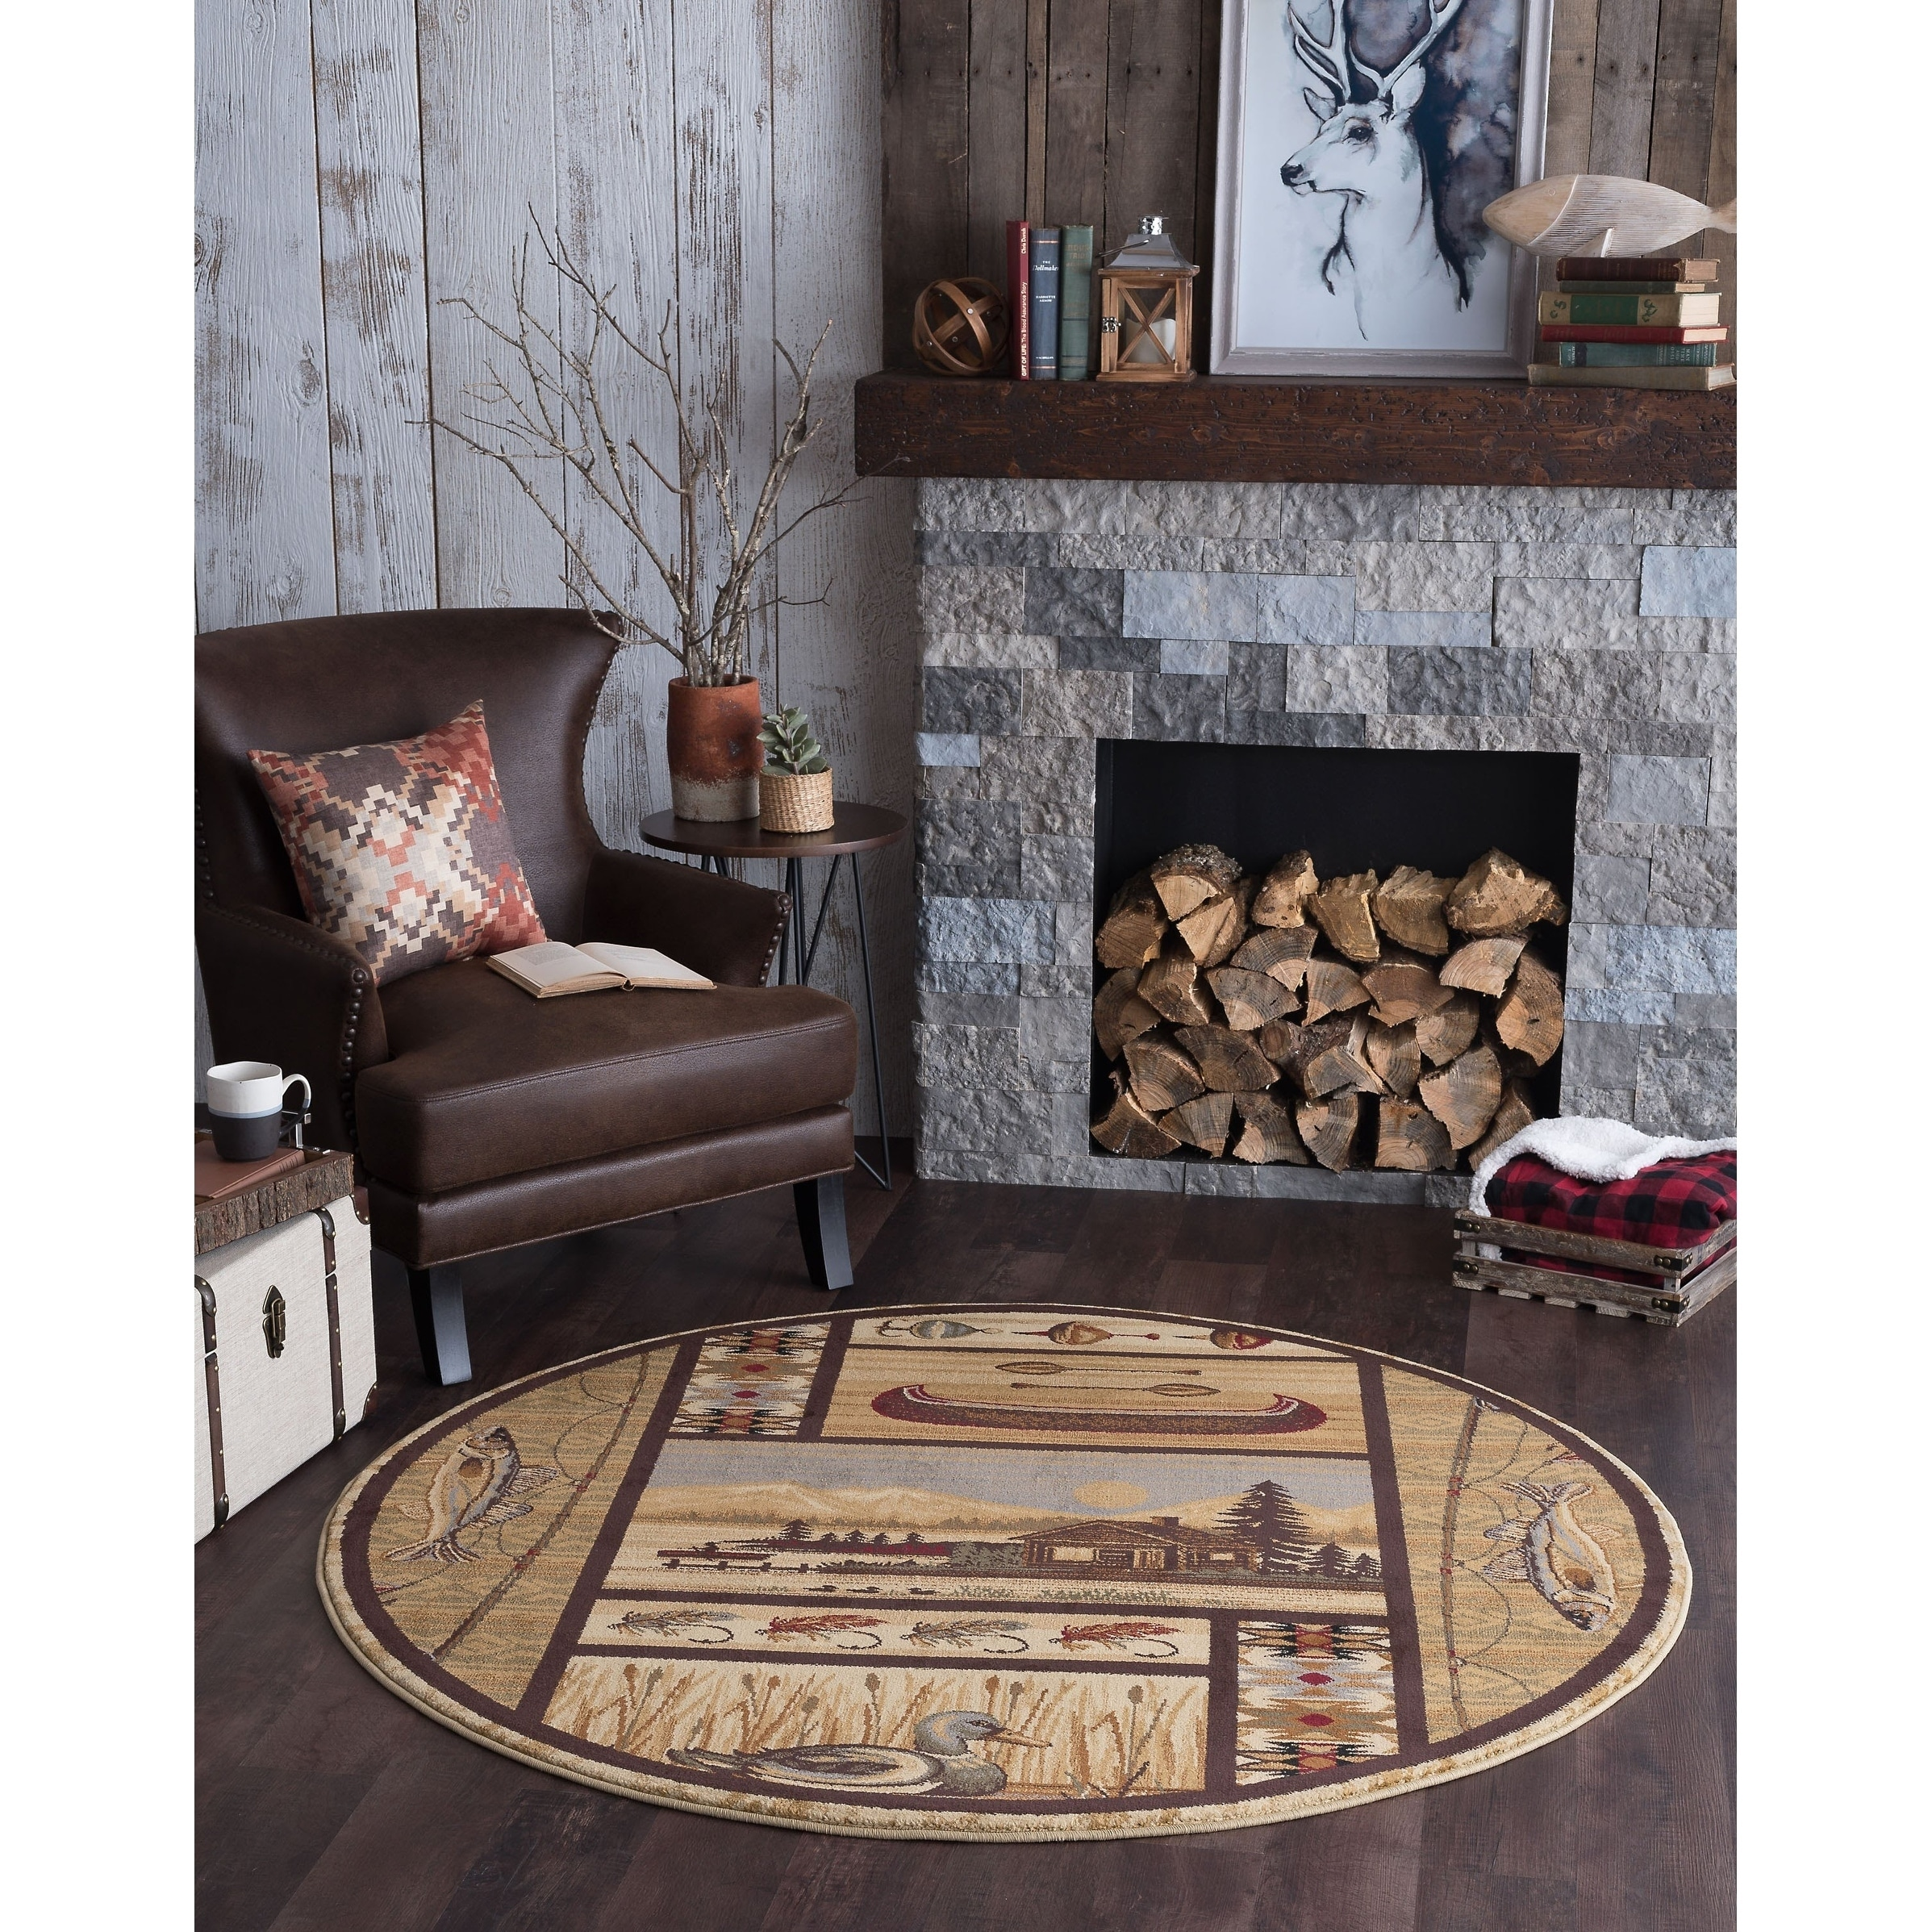 Alise Rugs Natural Lodge Novelty Lodge Round Area Rug 5 3 X 5 3